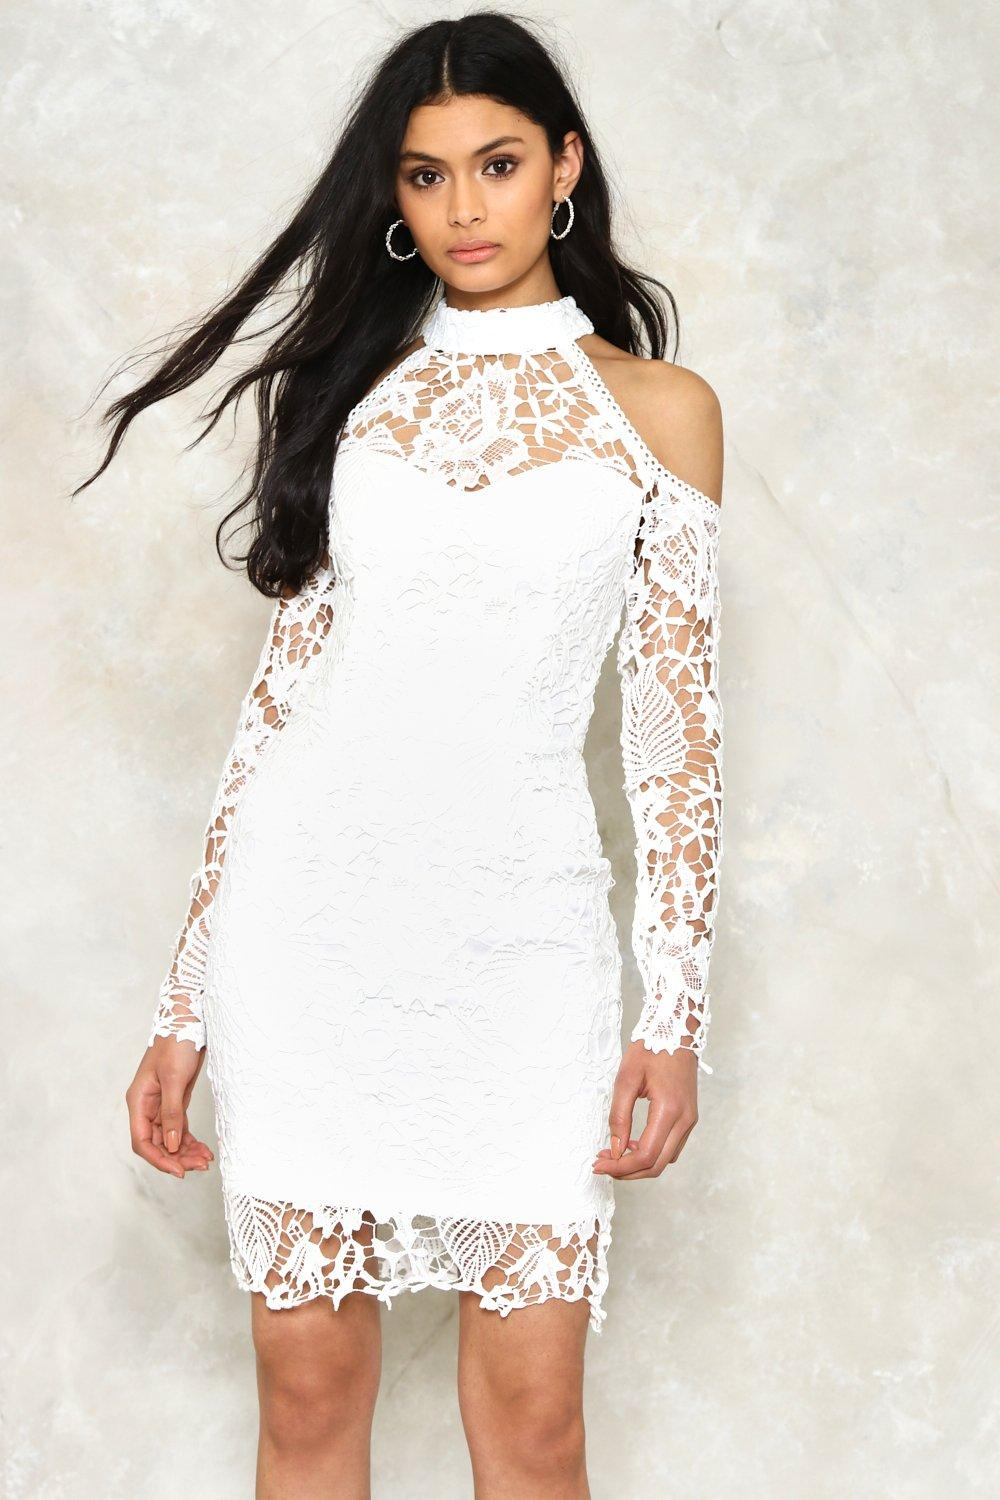 Alexandra Crochet Dress Shop Clothes At Nasty Gal